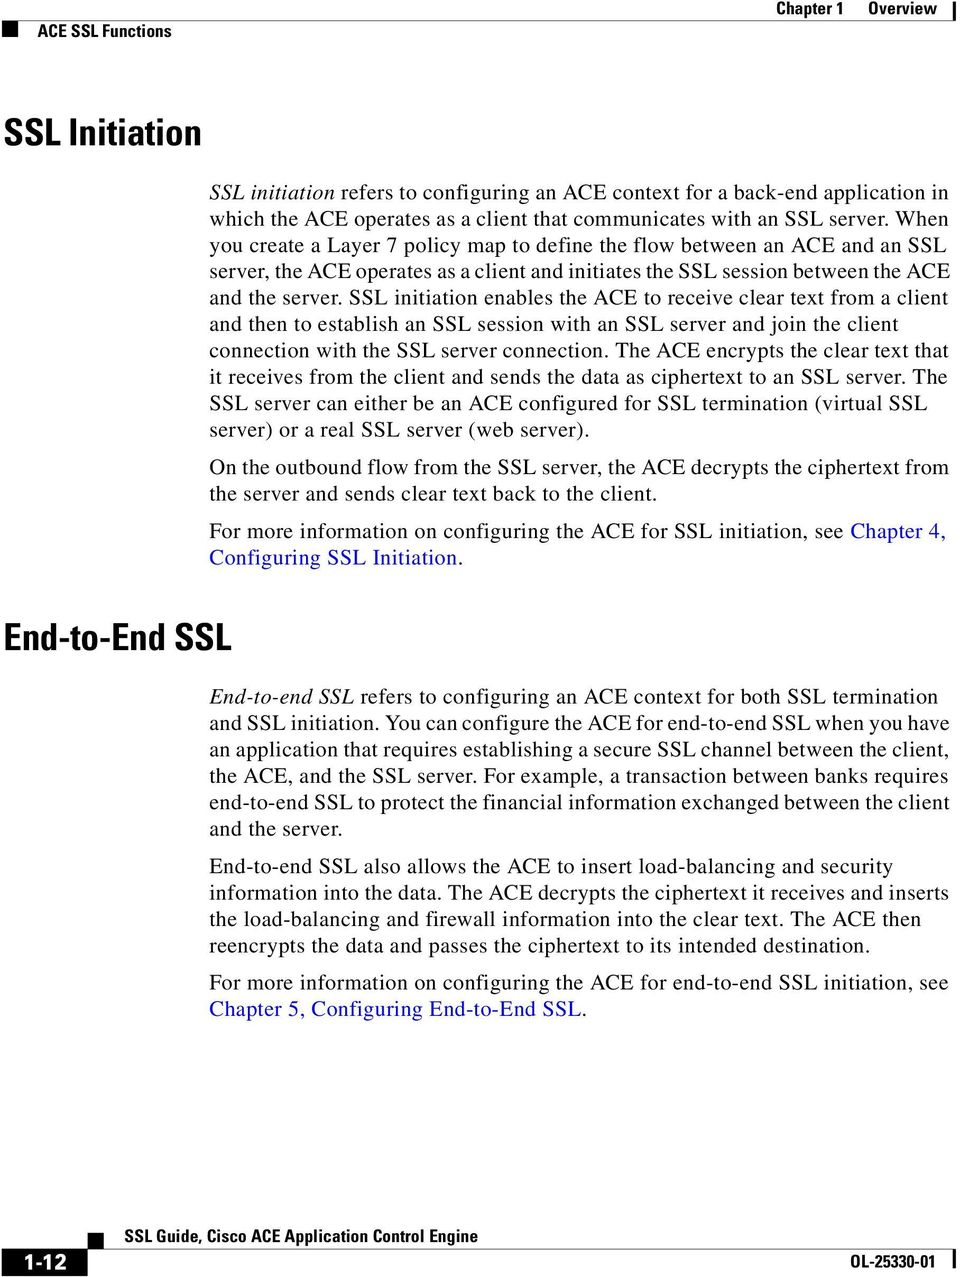 SSL initiation enables the ACE to receive clear text from a client and then to establish an SSL session with an SSL server and join the client connection with the SSL server connection.